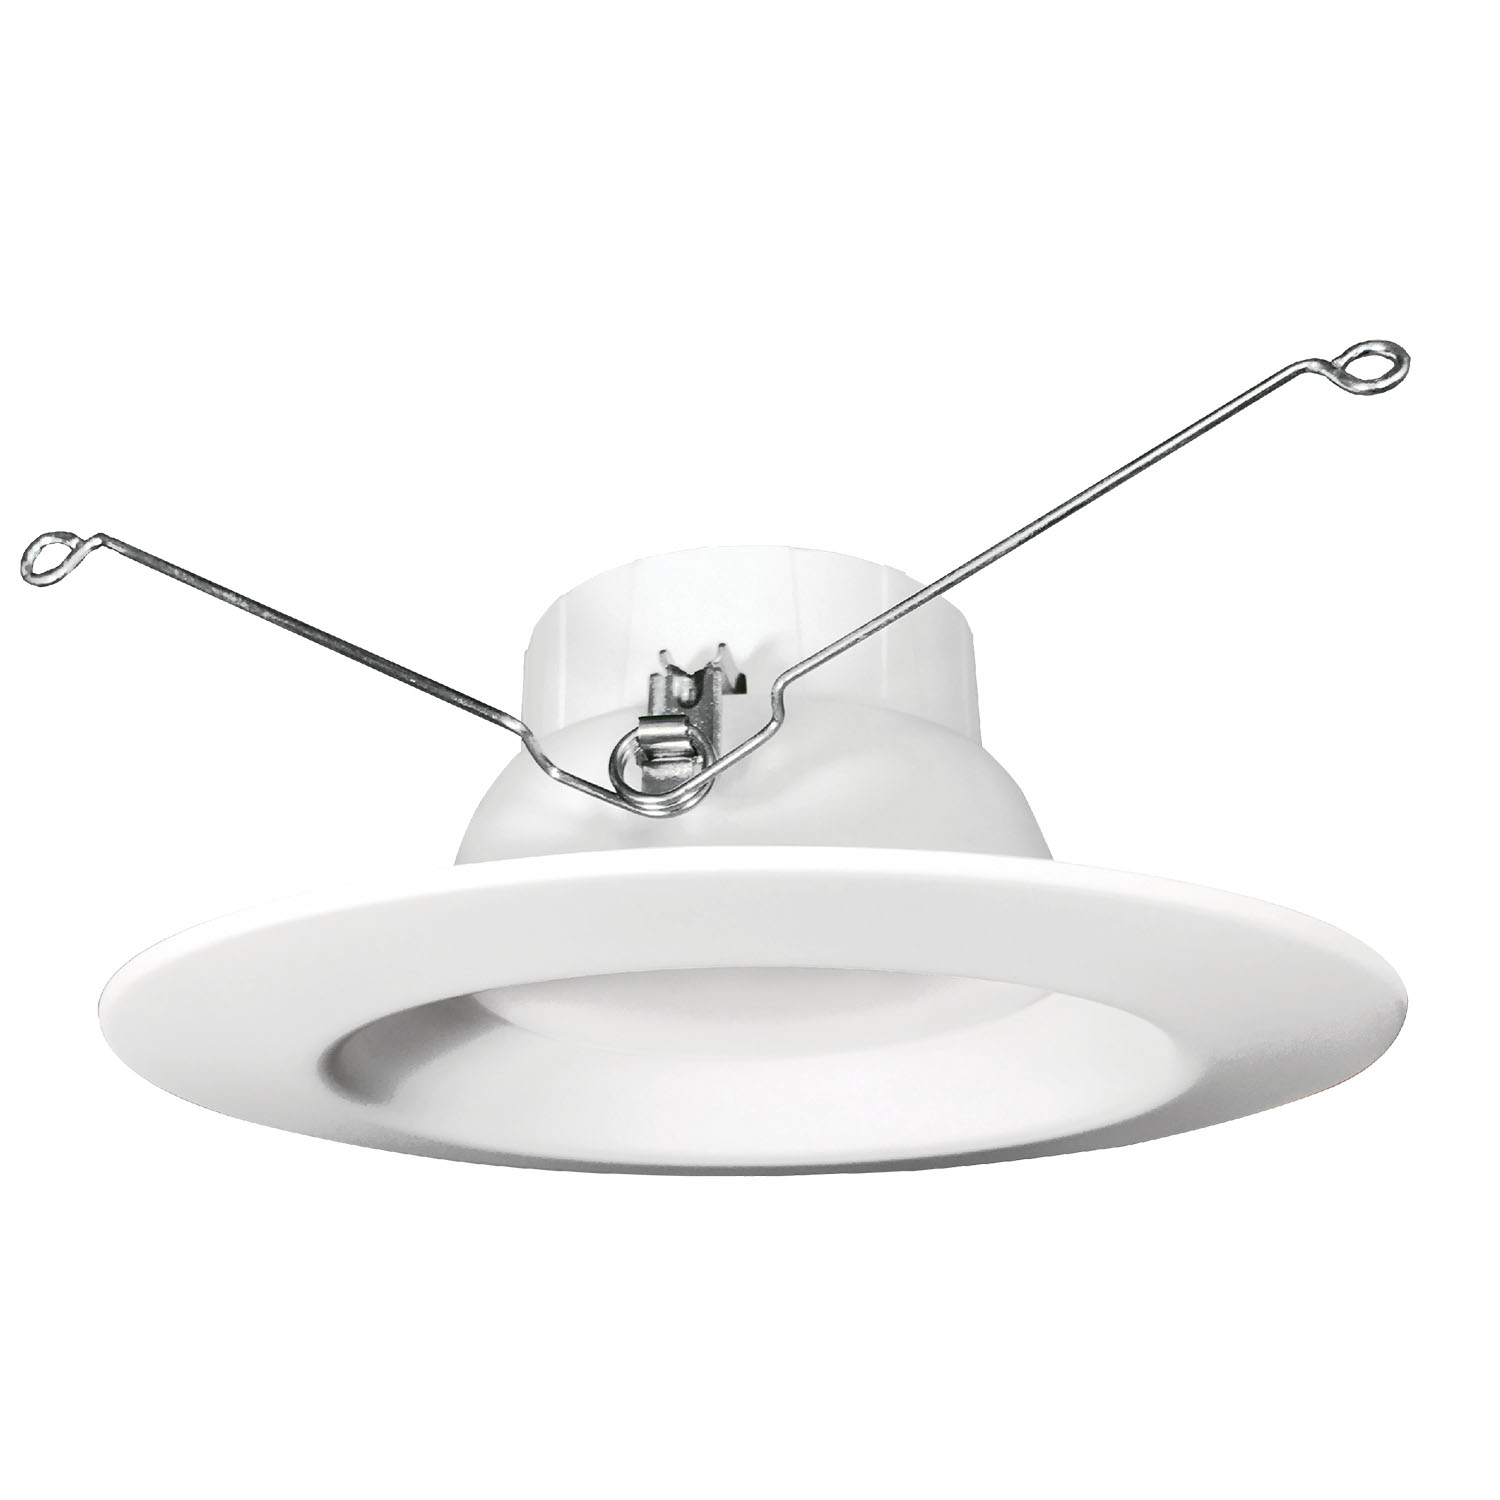 "DL6FR12/930/ECO/LED2 99642 6"" Retrofit Downlight, 12W, 3000K, Dimmable ProLED ECO Series II"